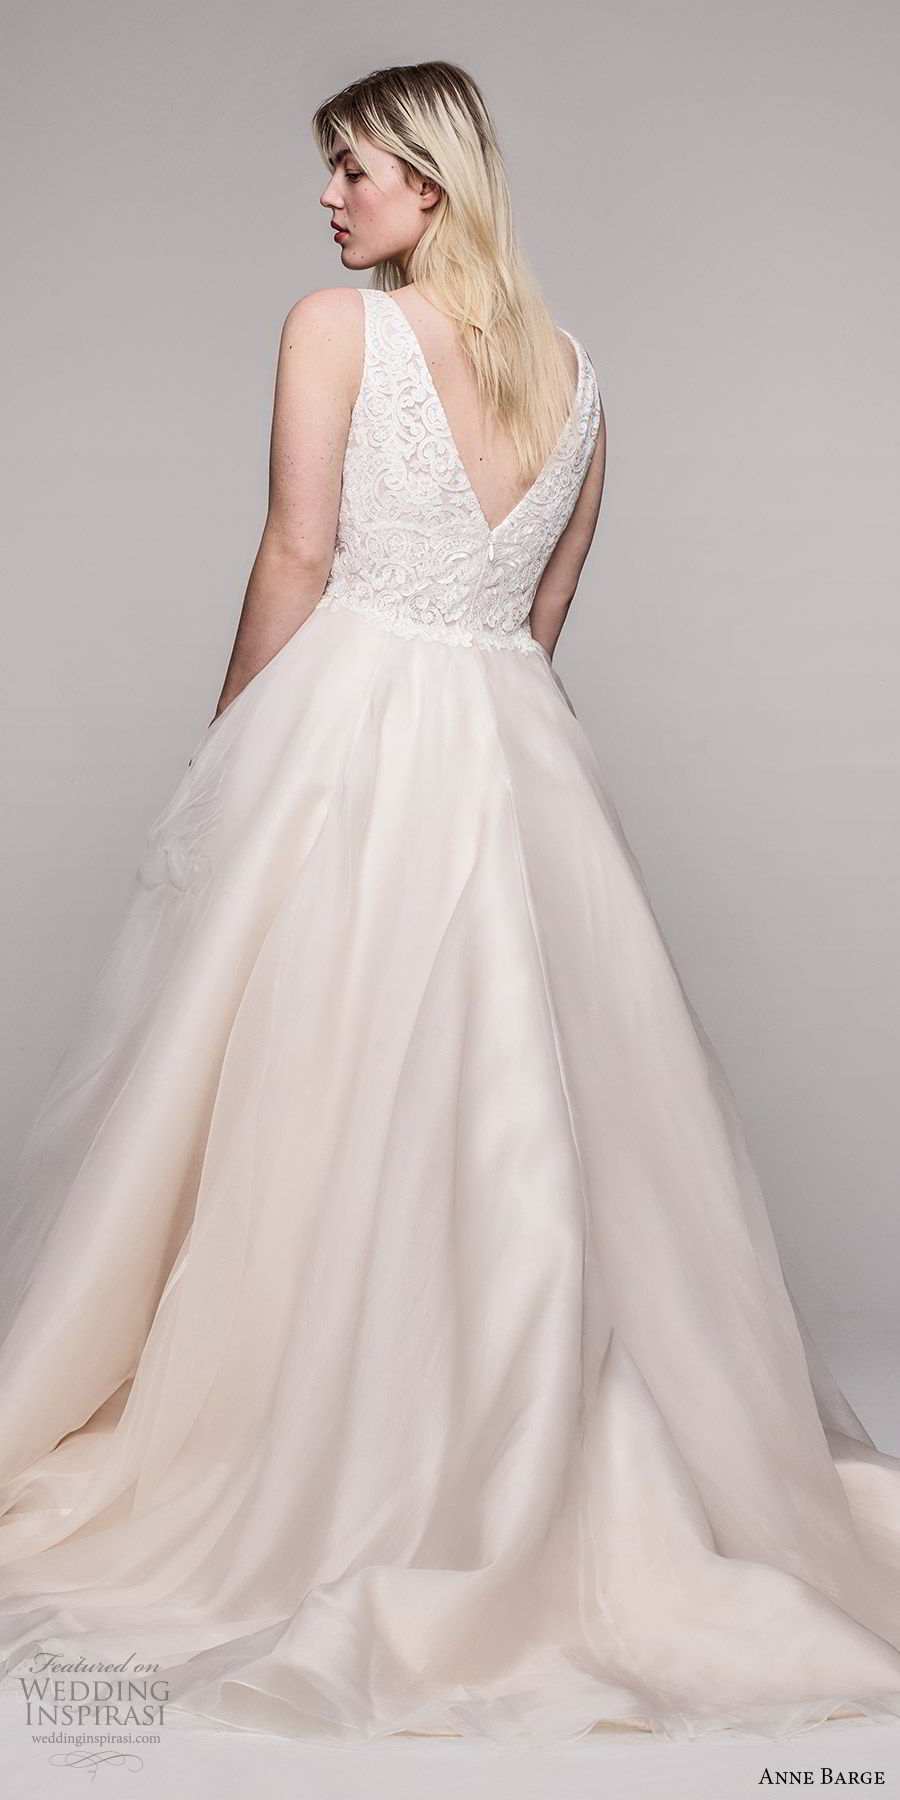 anne barge 2020 bridal plus size sleeveless thick straps v neckline embellished bodice a line ball gown wedding dress (12) elegant romantic blush champagne chapel train bv